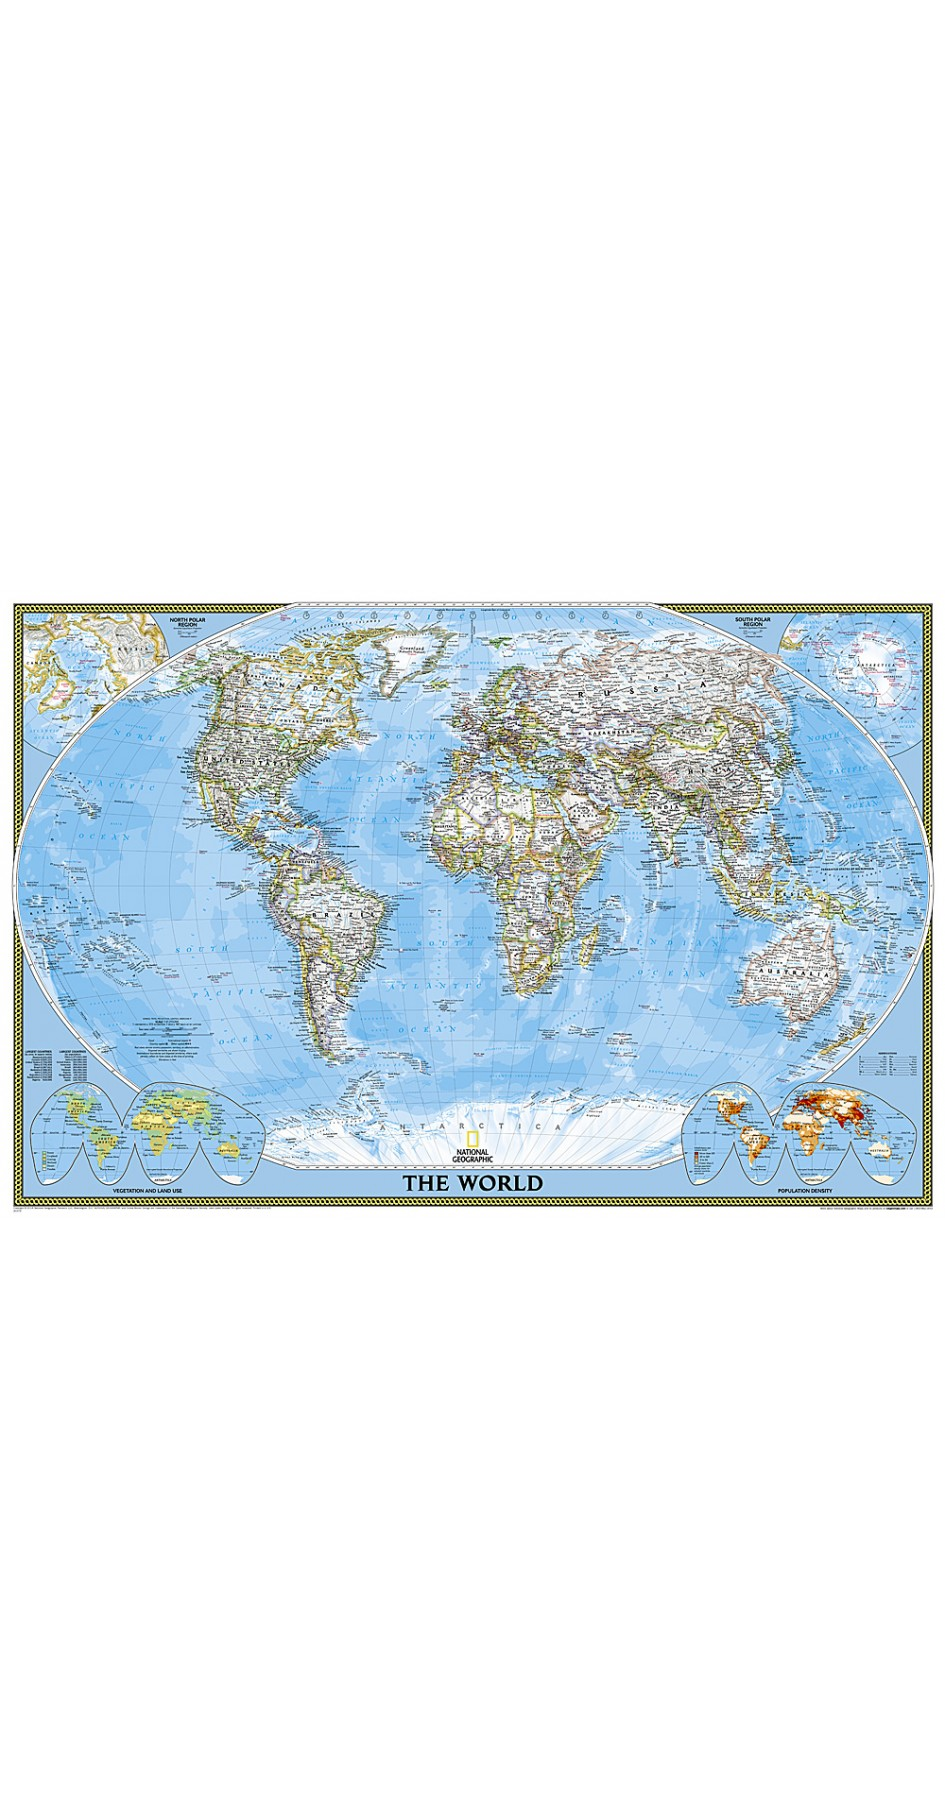 NG World Classic Map [Poster Size] 91cm x 61cm